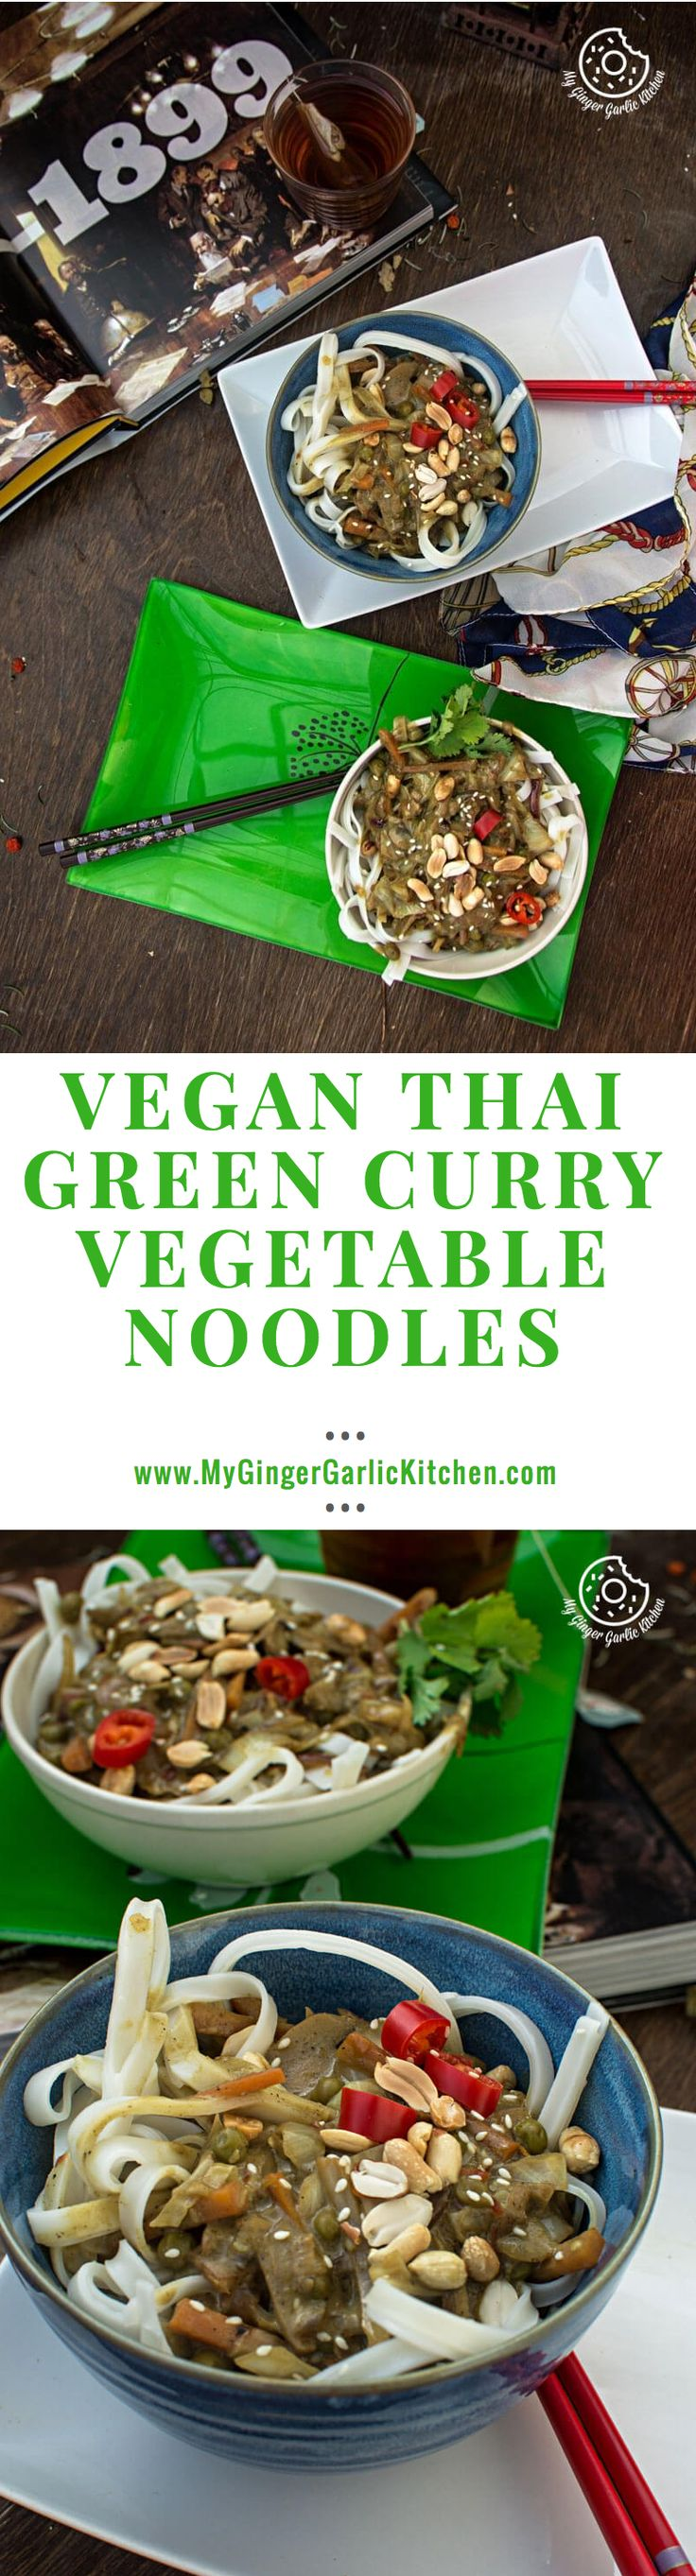 Vegan Thai Green Curry Vegetable Noddles | mygingergarlickitchen.com/ @anupama_dreams